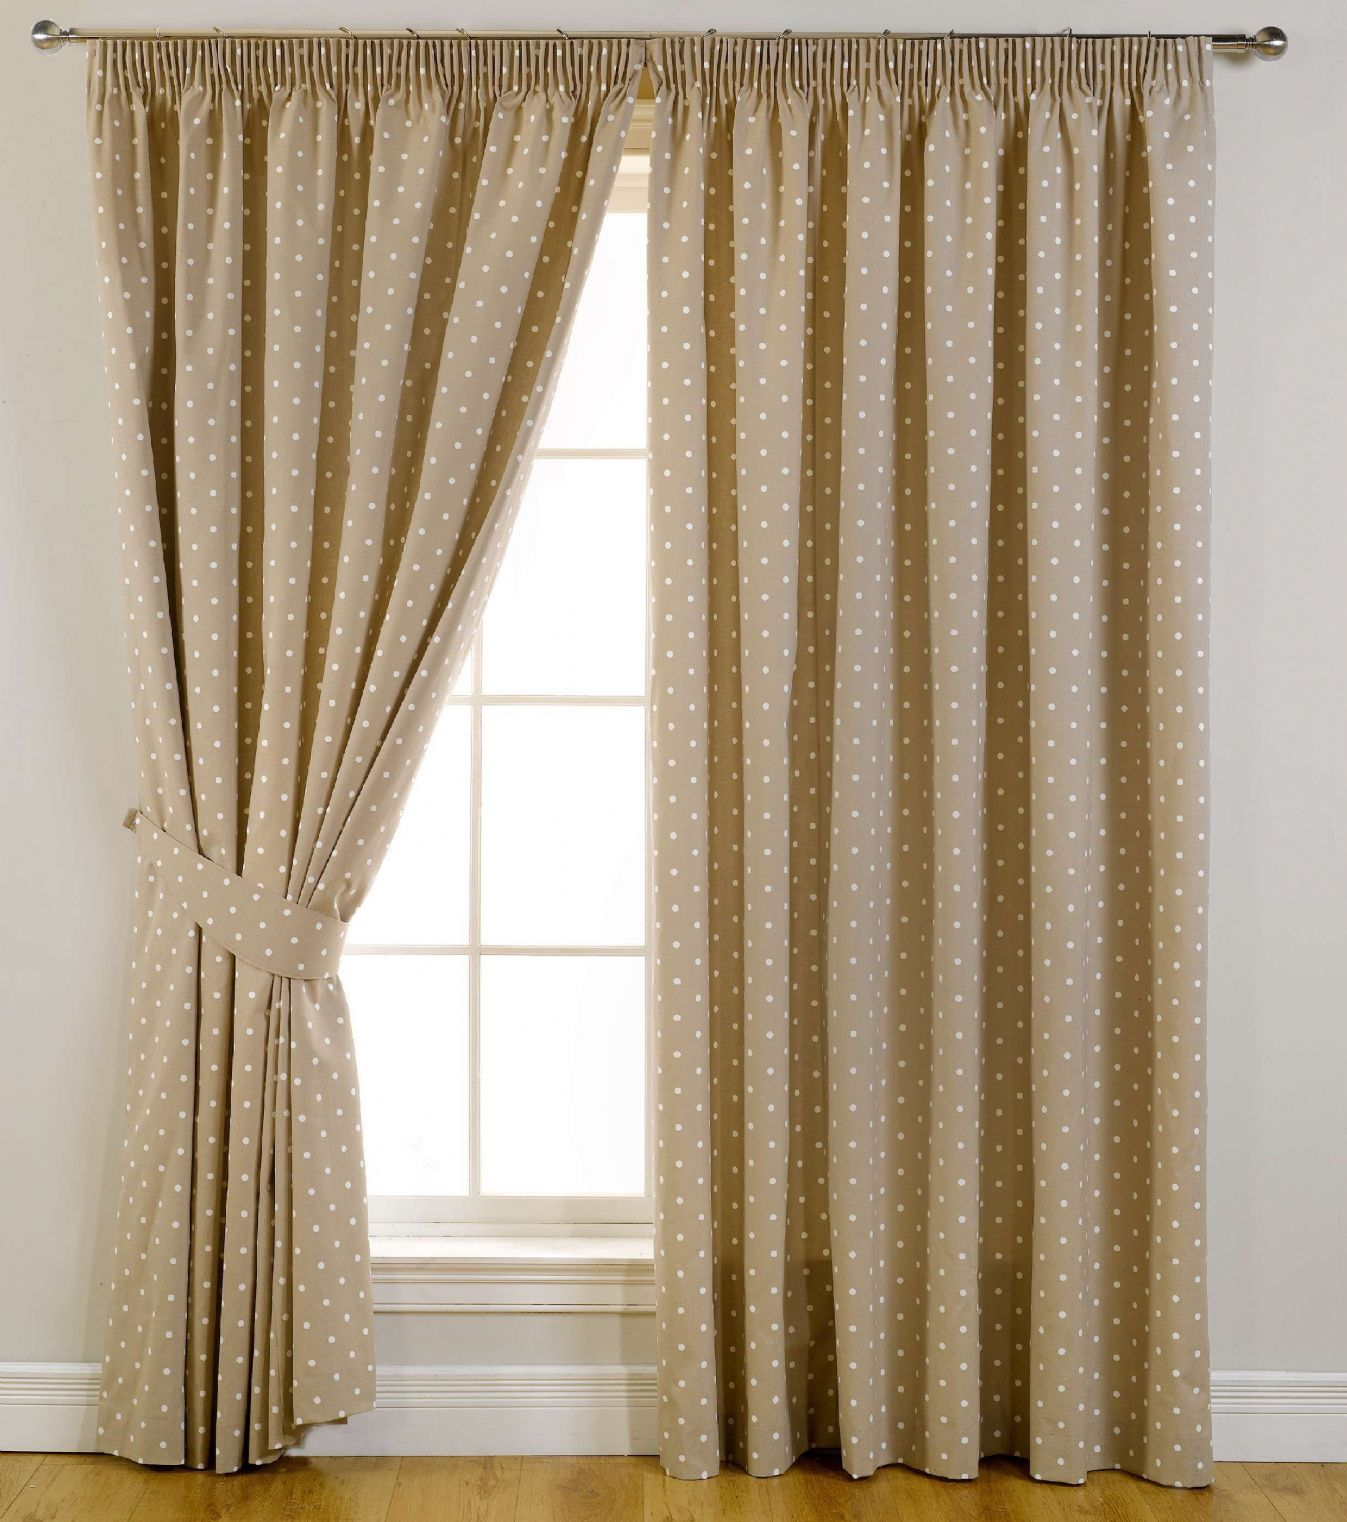 Pin On Bedroom Furniture Cool bedroom curtains ideas